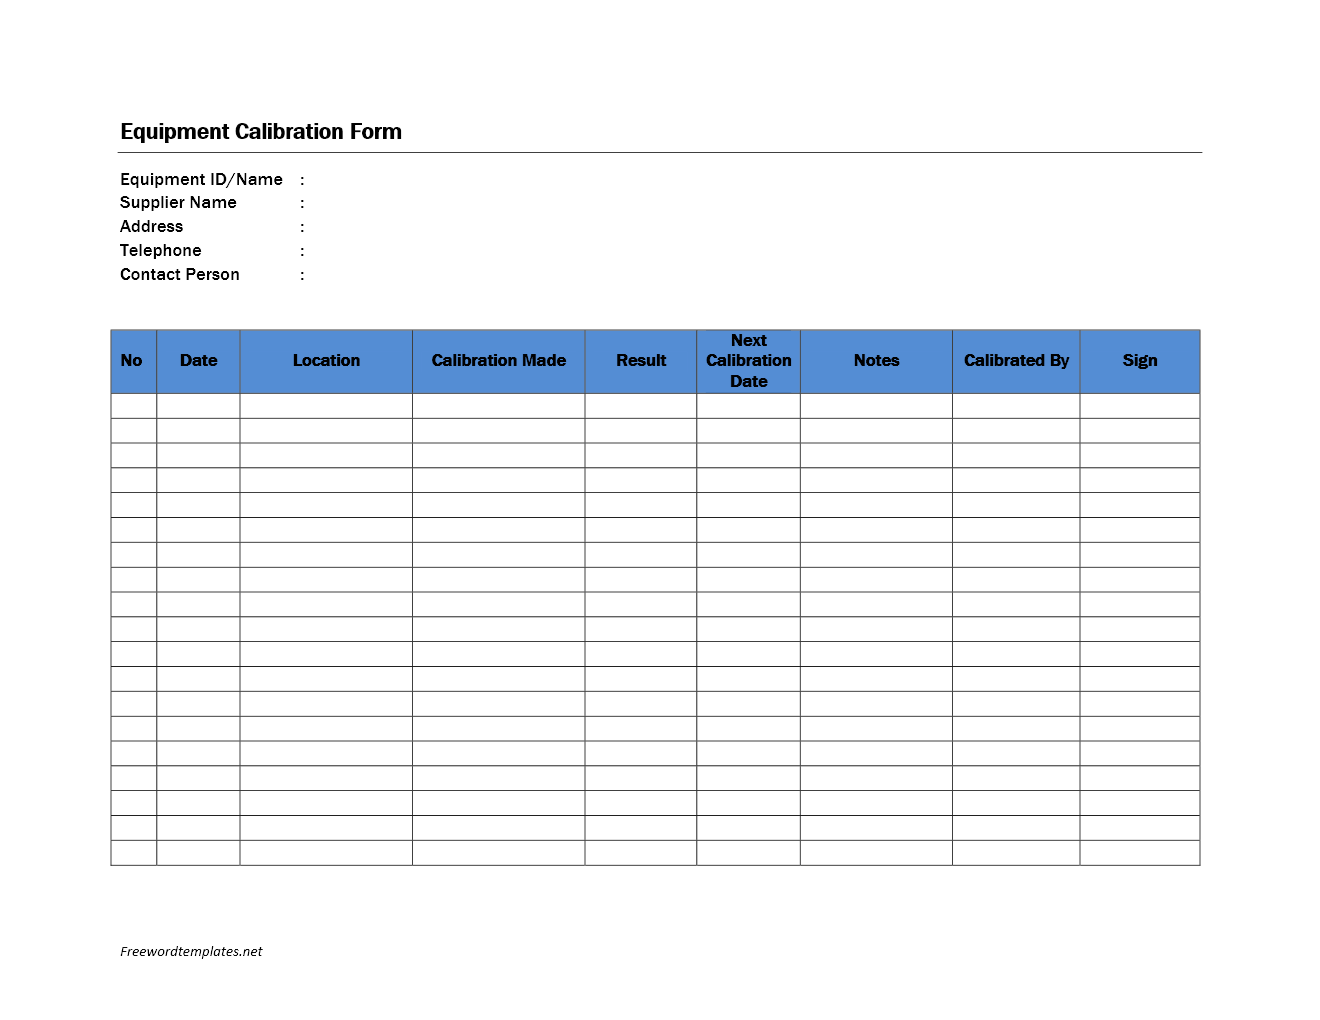 Equipment Calibration Form